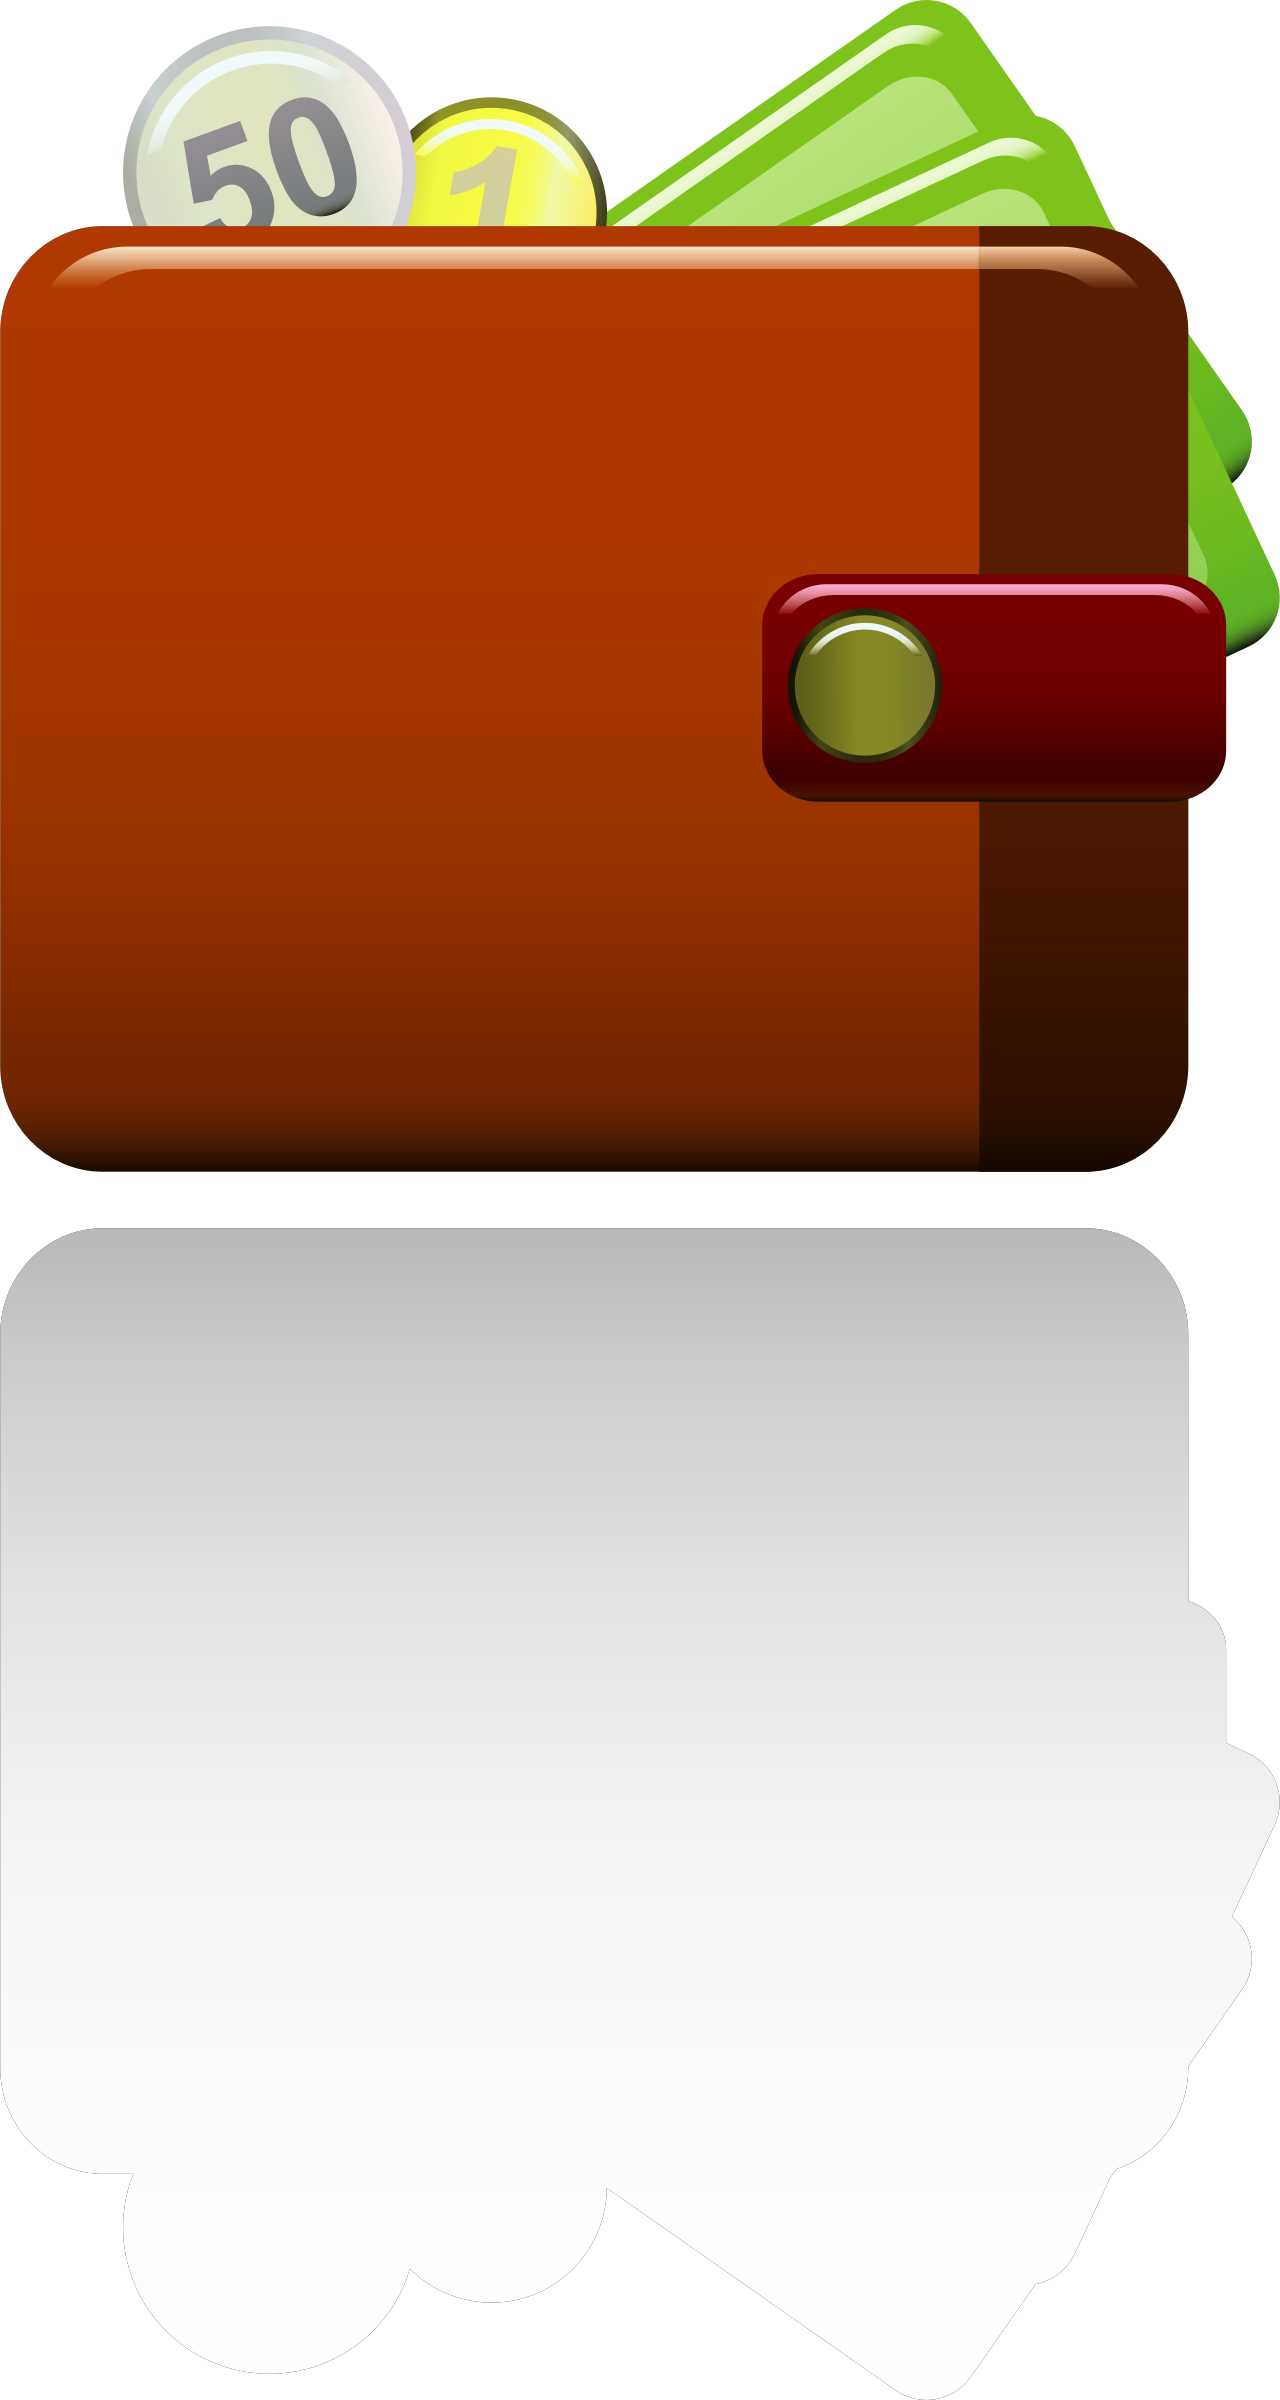 Icons big image png. Wallet clipart outline